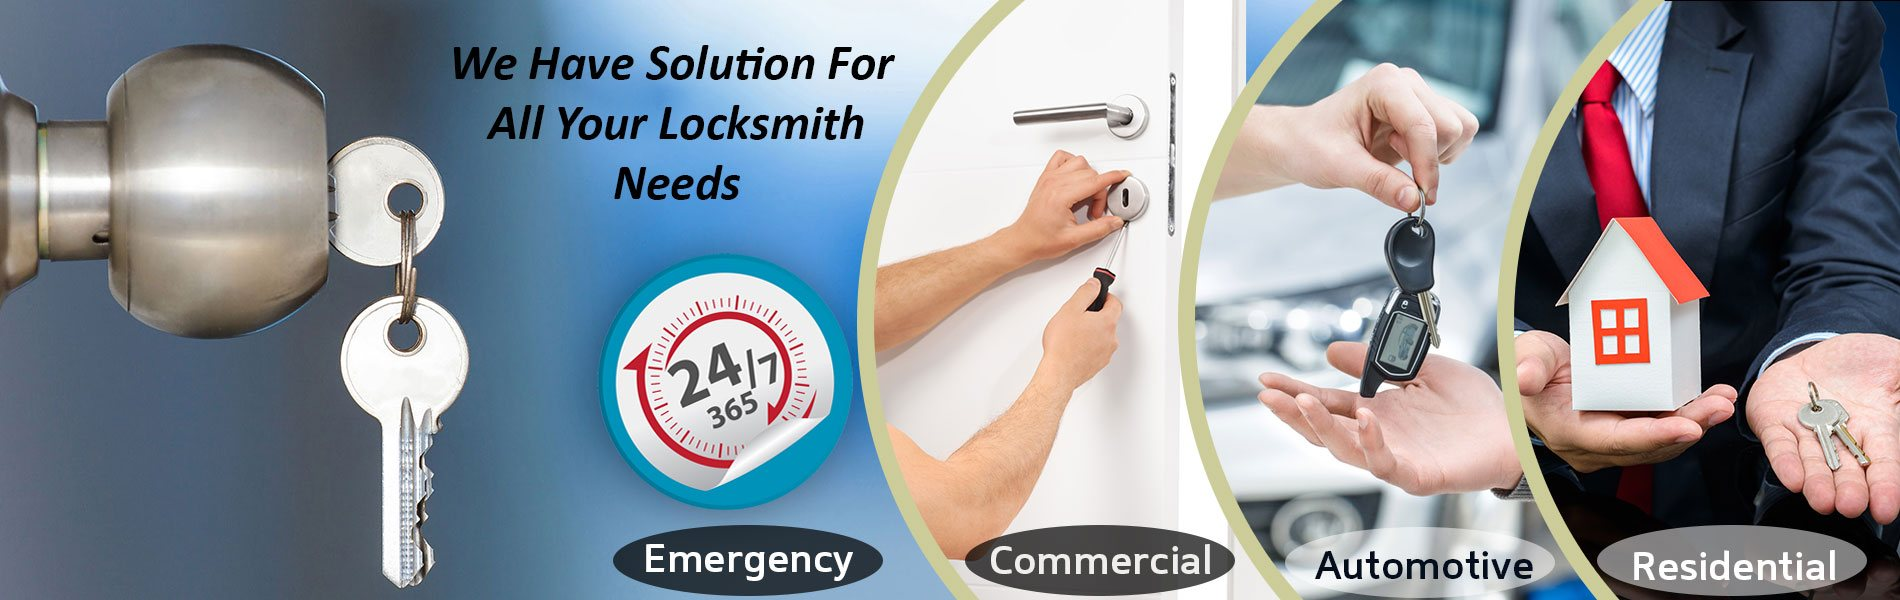 Neighborhood Locksmith Store Tarzana, CA 818-491-5037